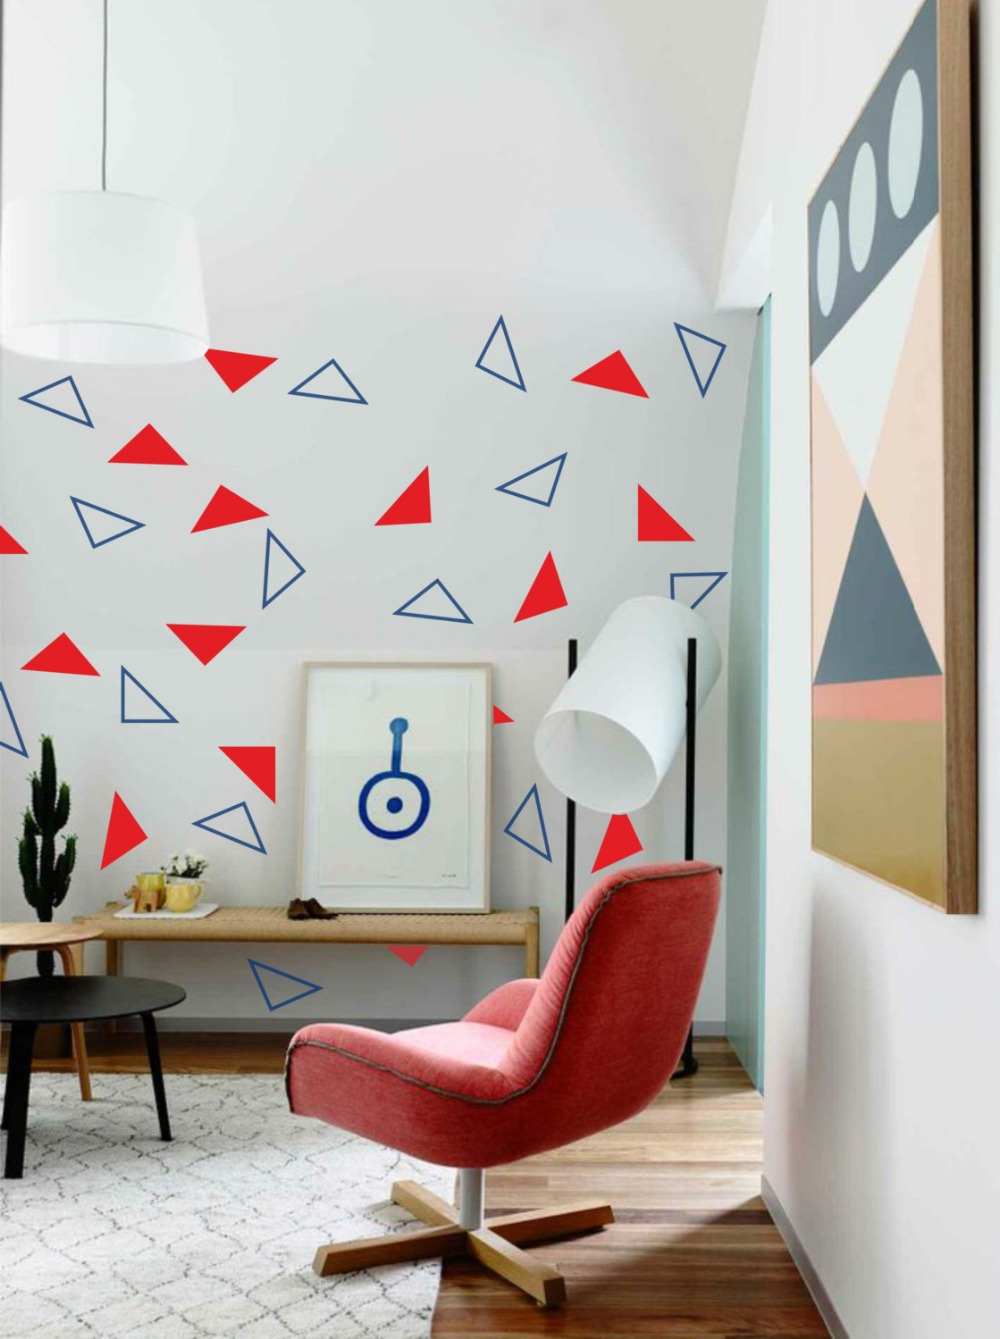 24pcs(solid and hollow) Triangles Abstract geometric wall sticker office decor,free ship